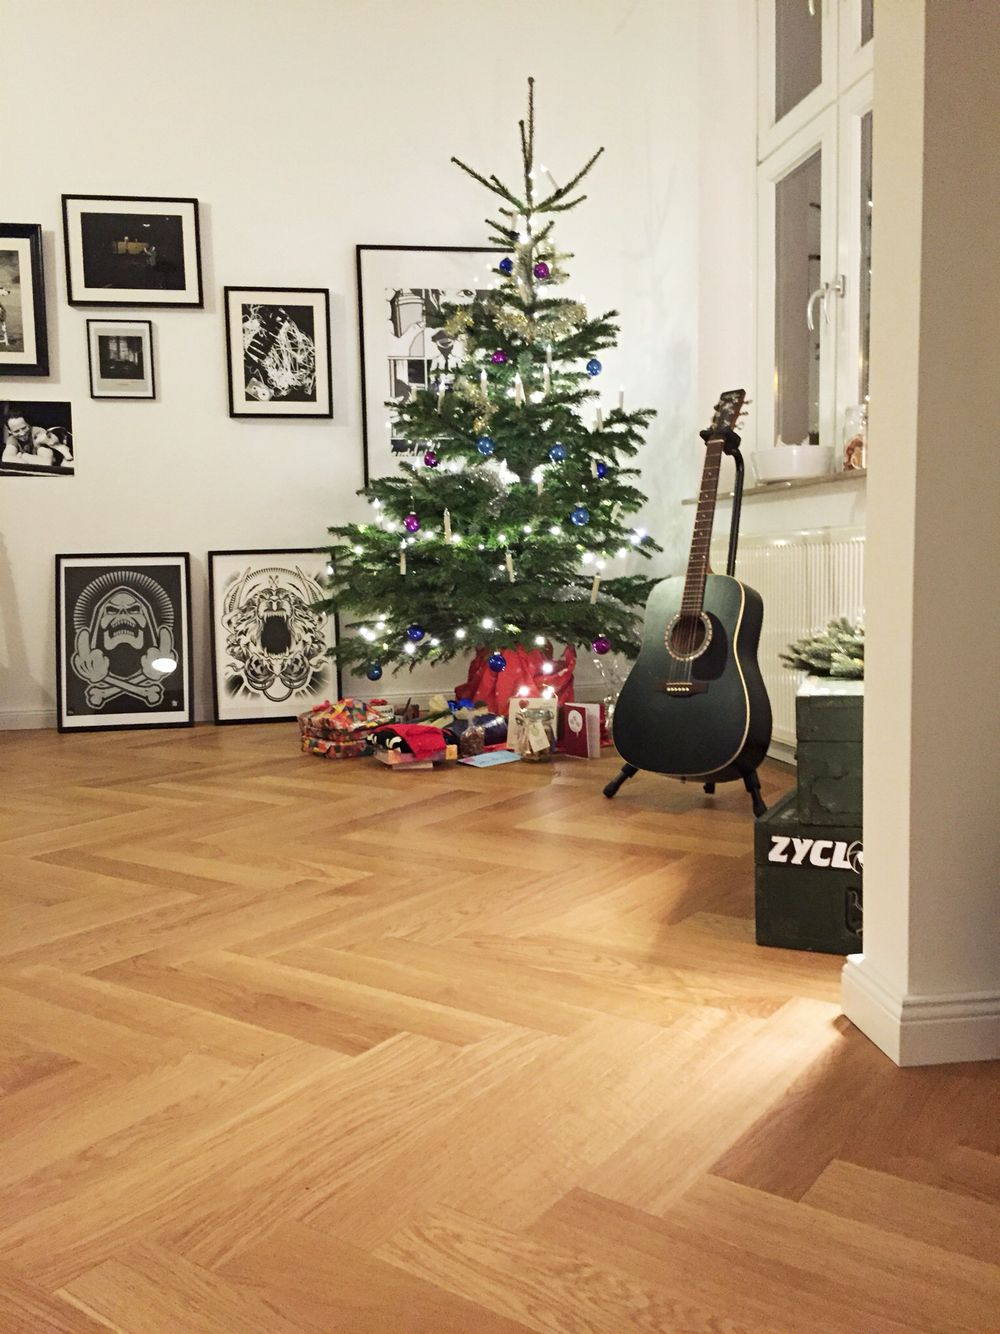 Parkett Krefeld Love This Style, Christmastree On Perfect Floor ...